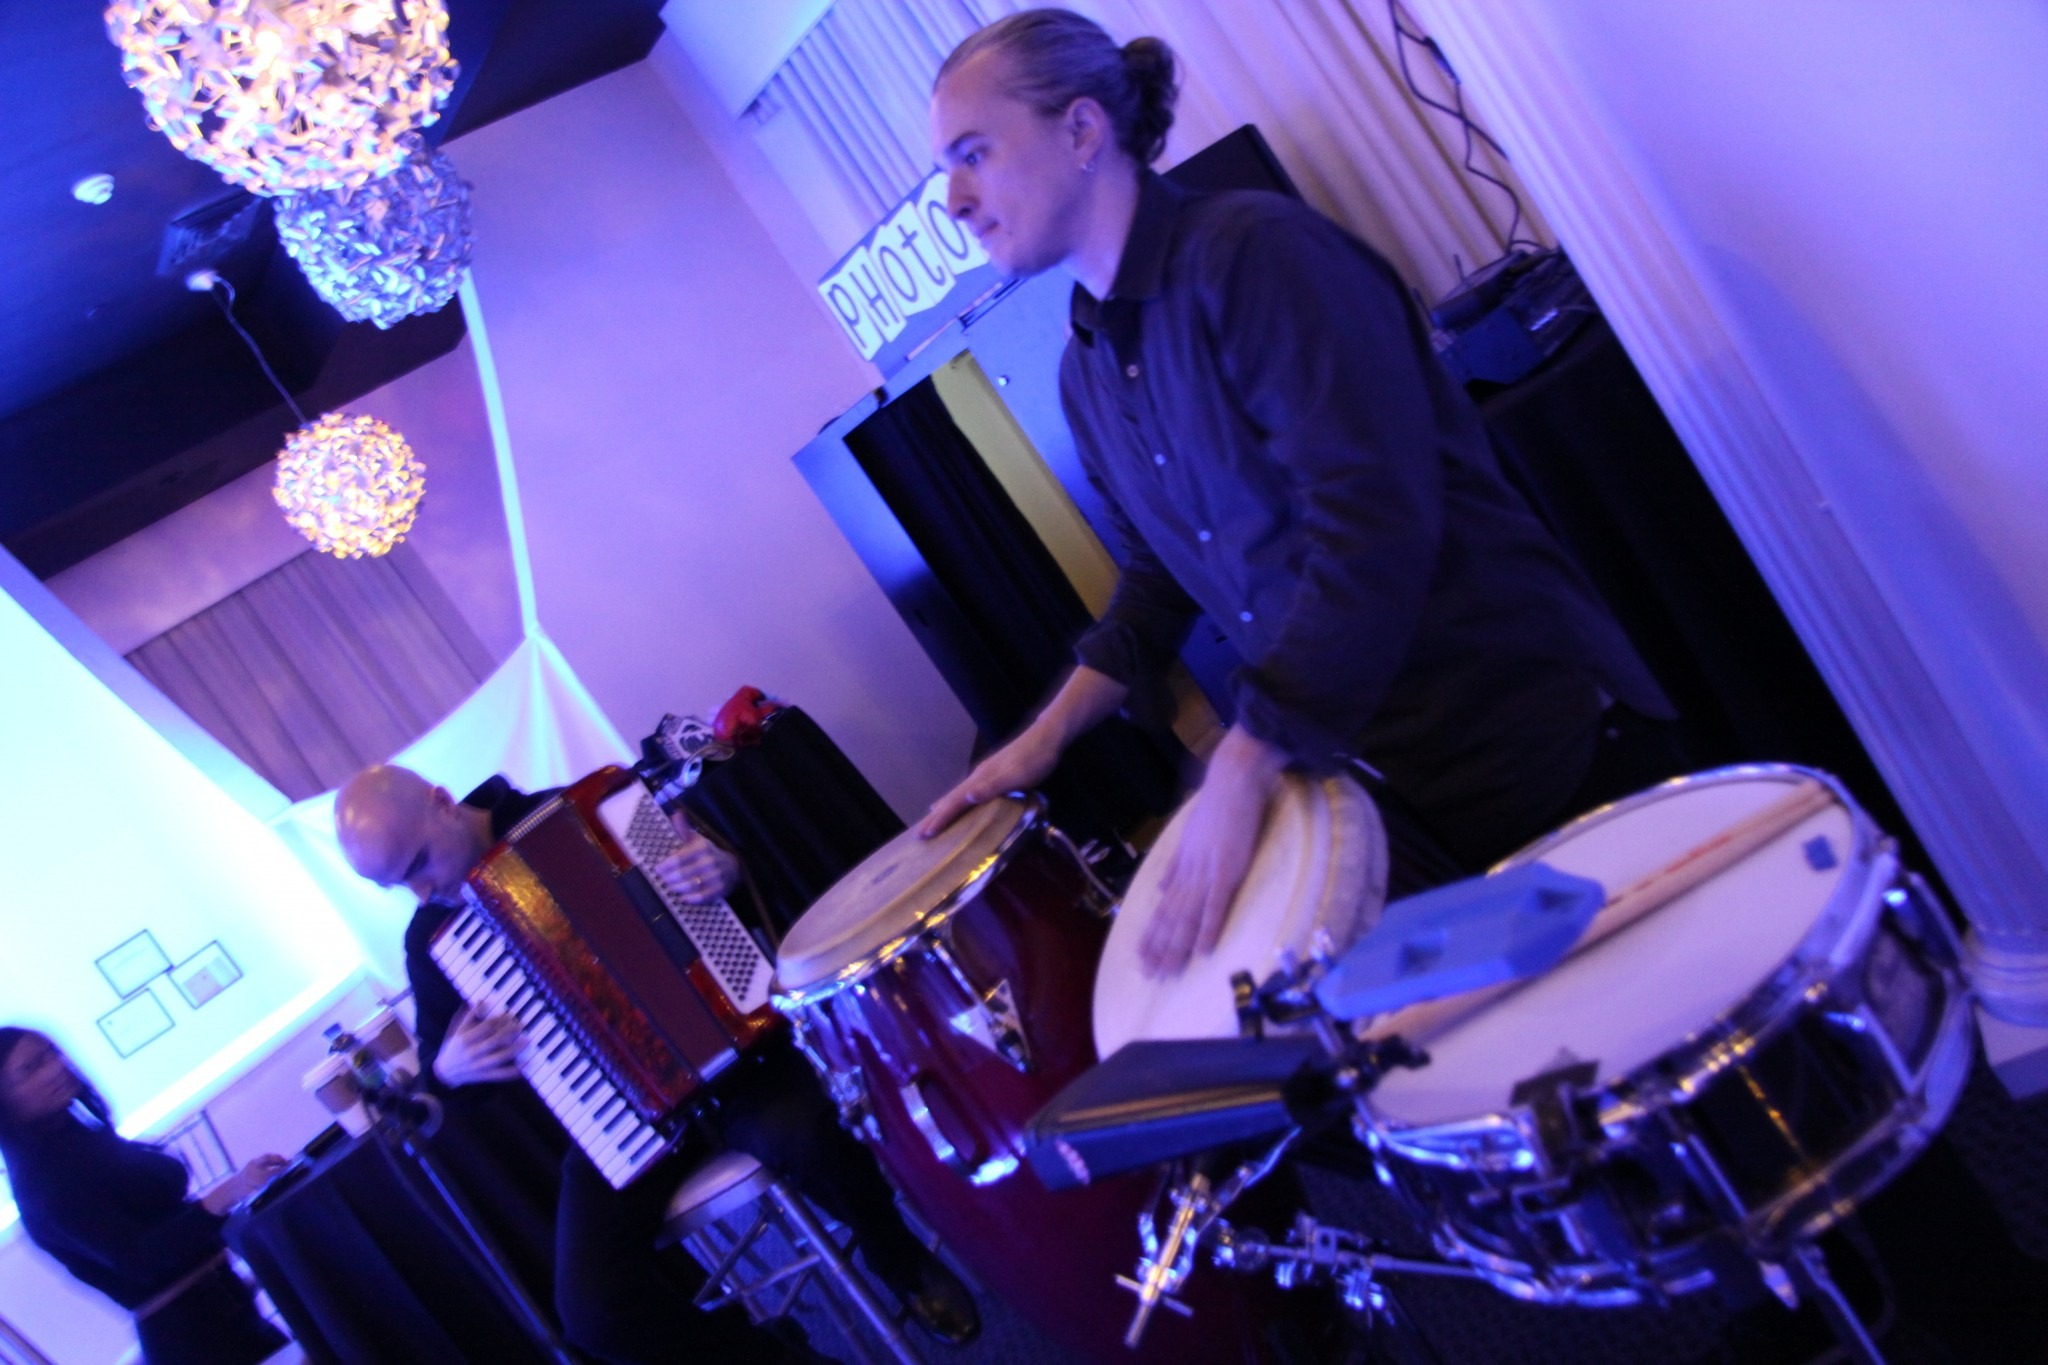 Percussionist with Congas